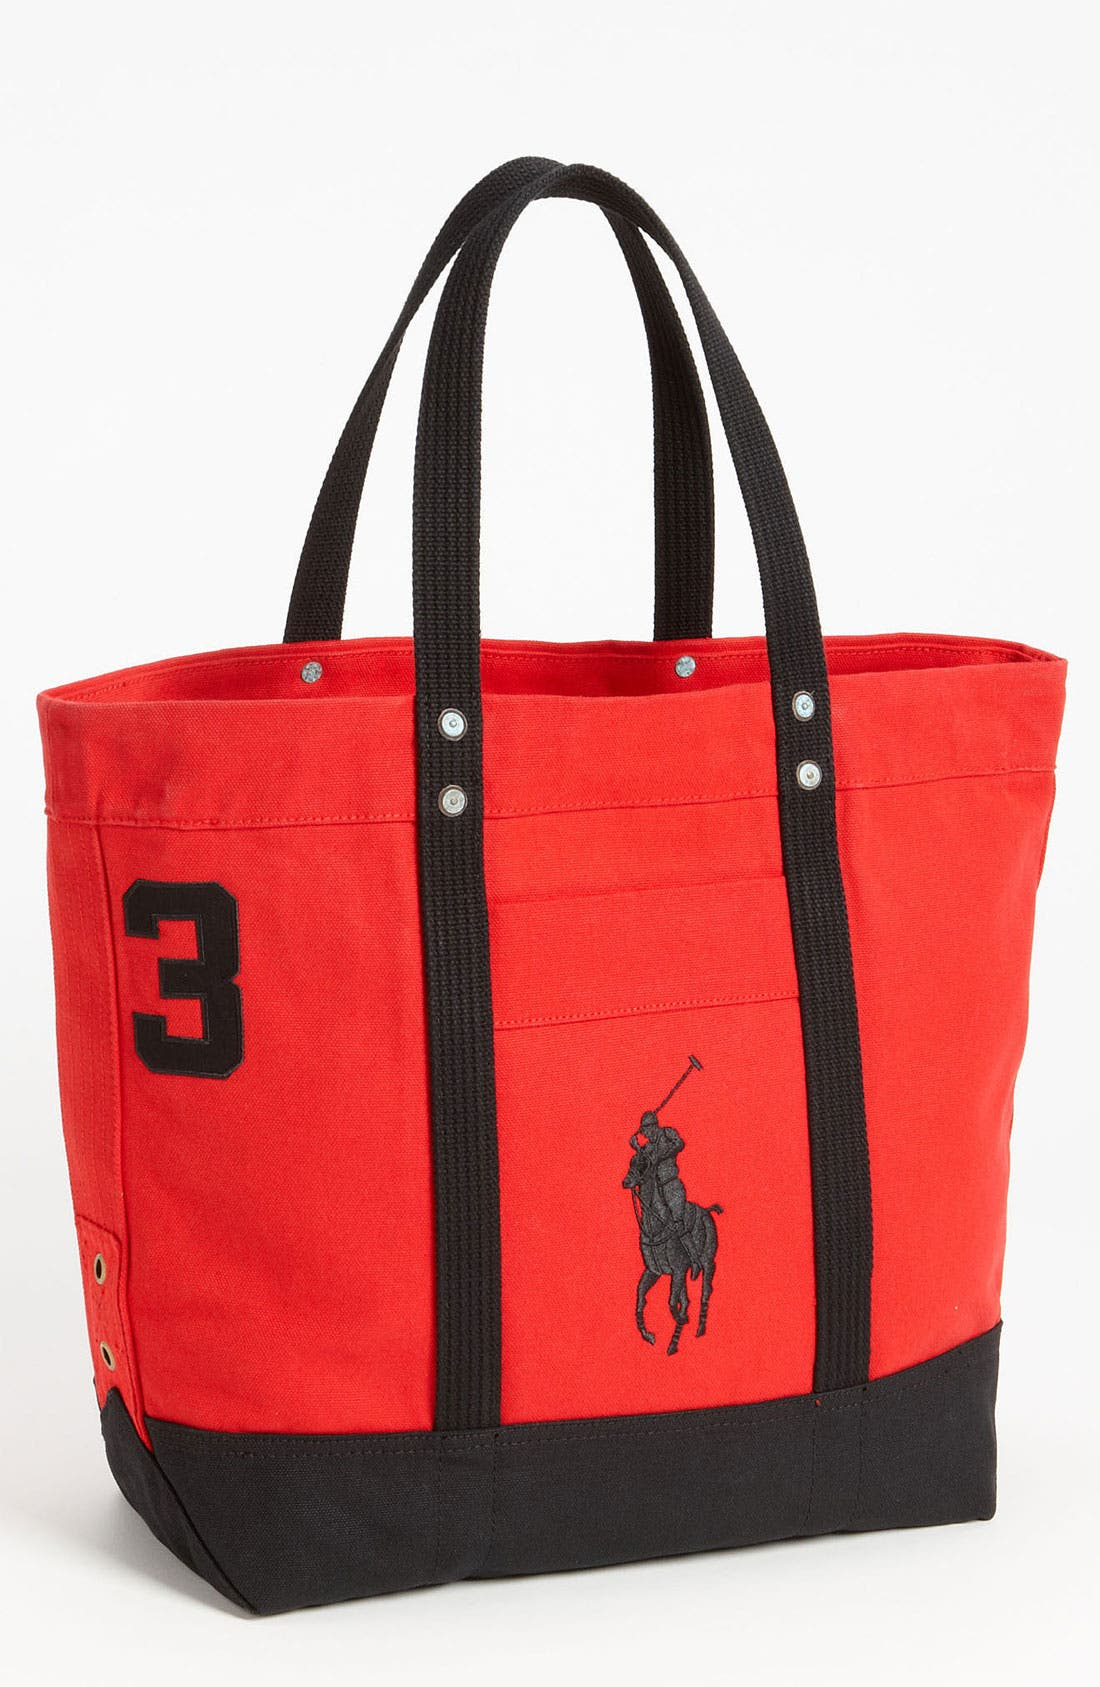 Alternate Image 1 Selected - Polo Ralph Lauren Tote Bag